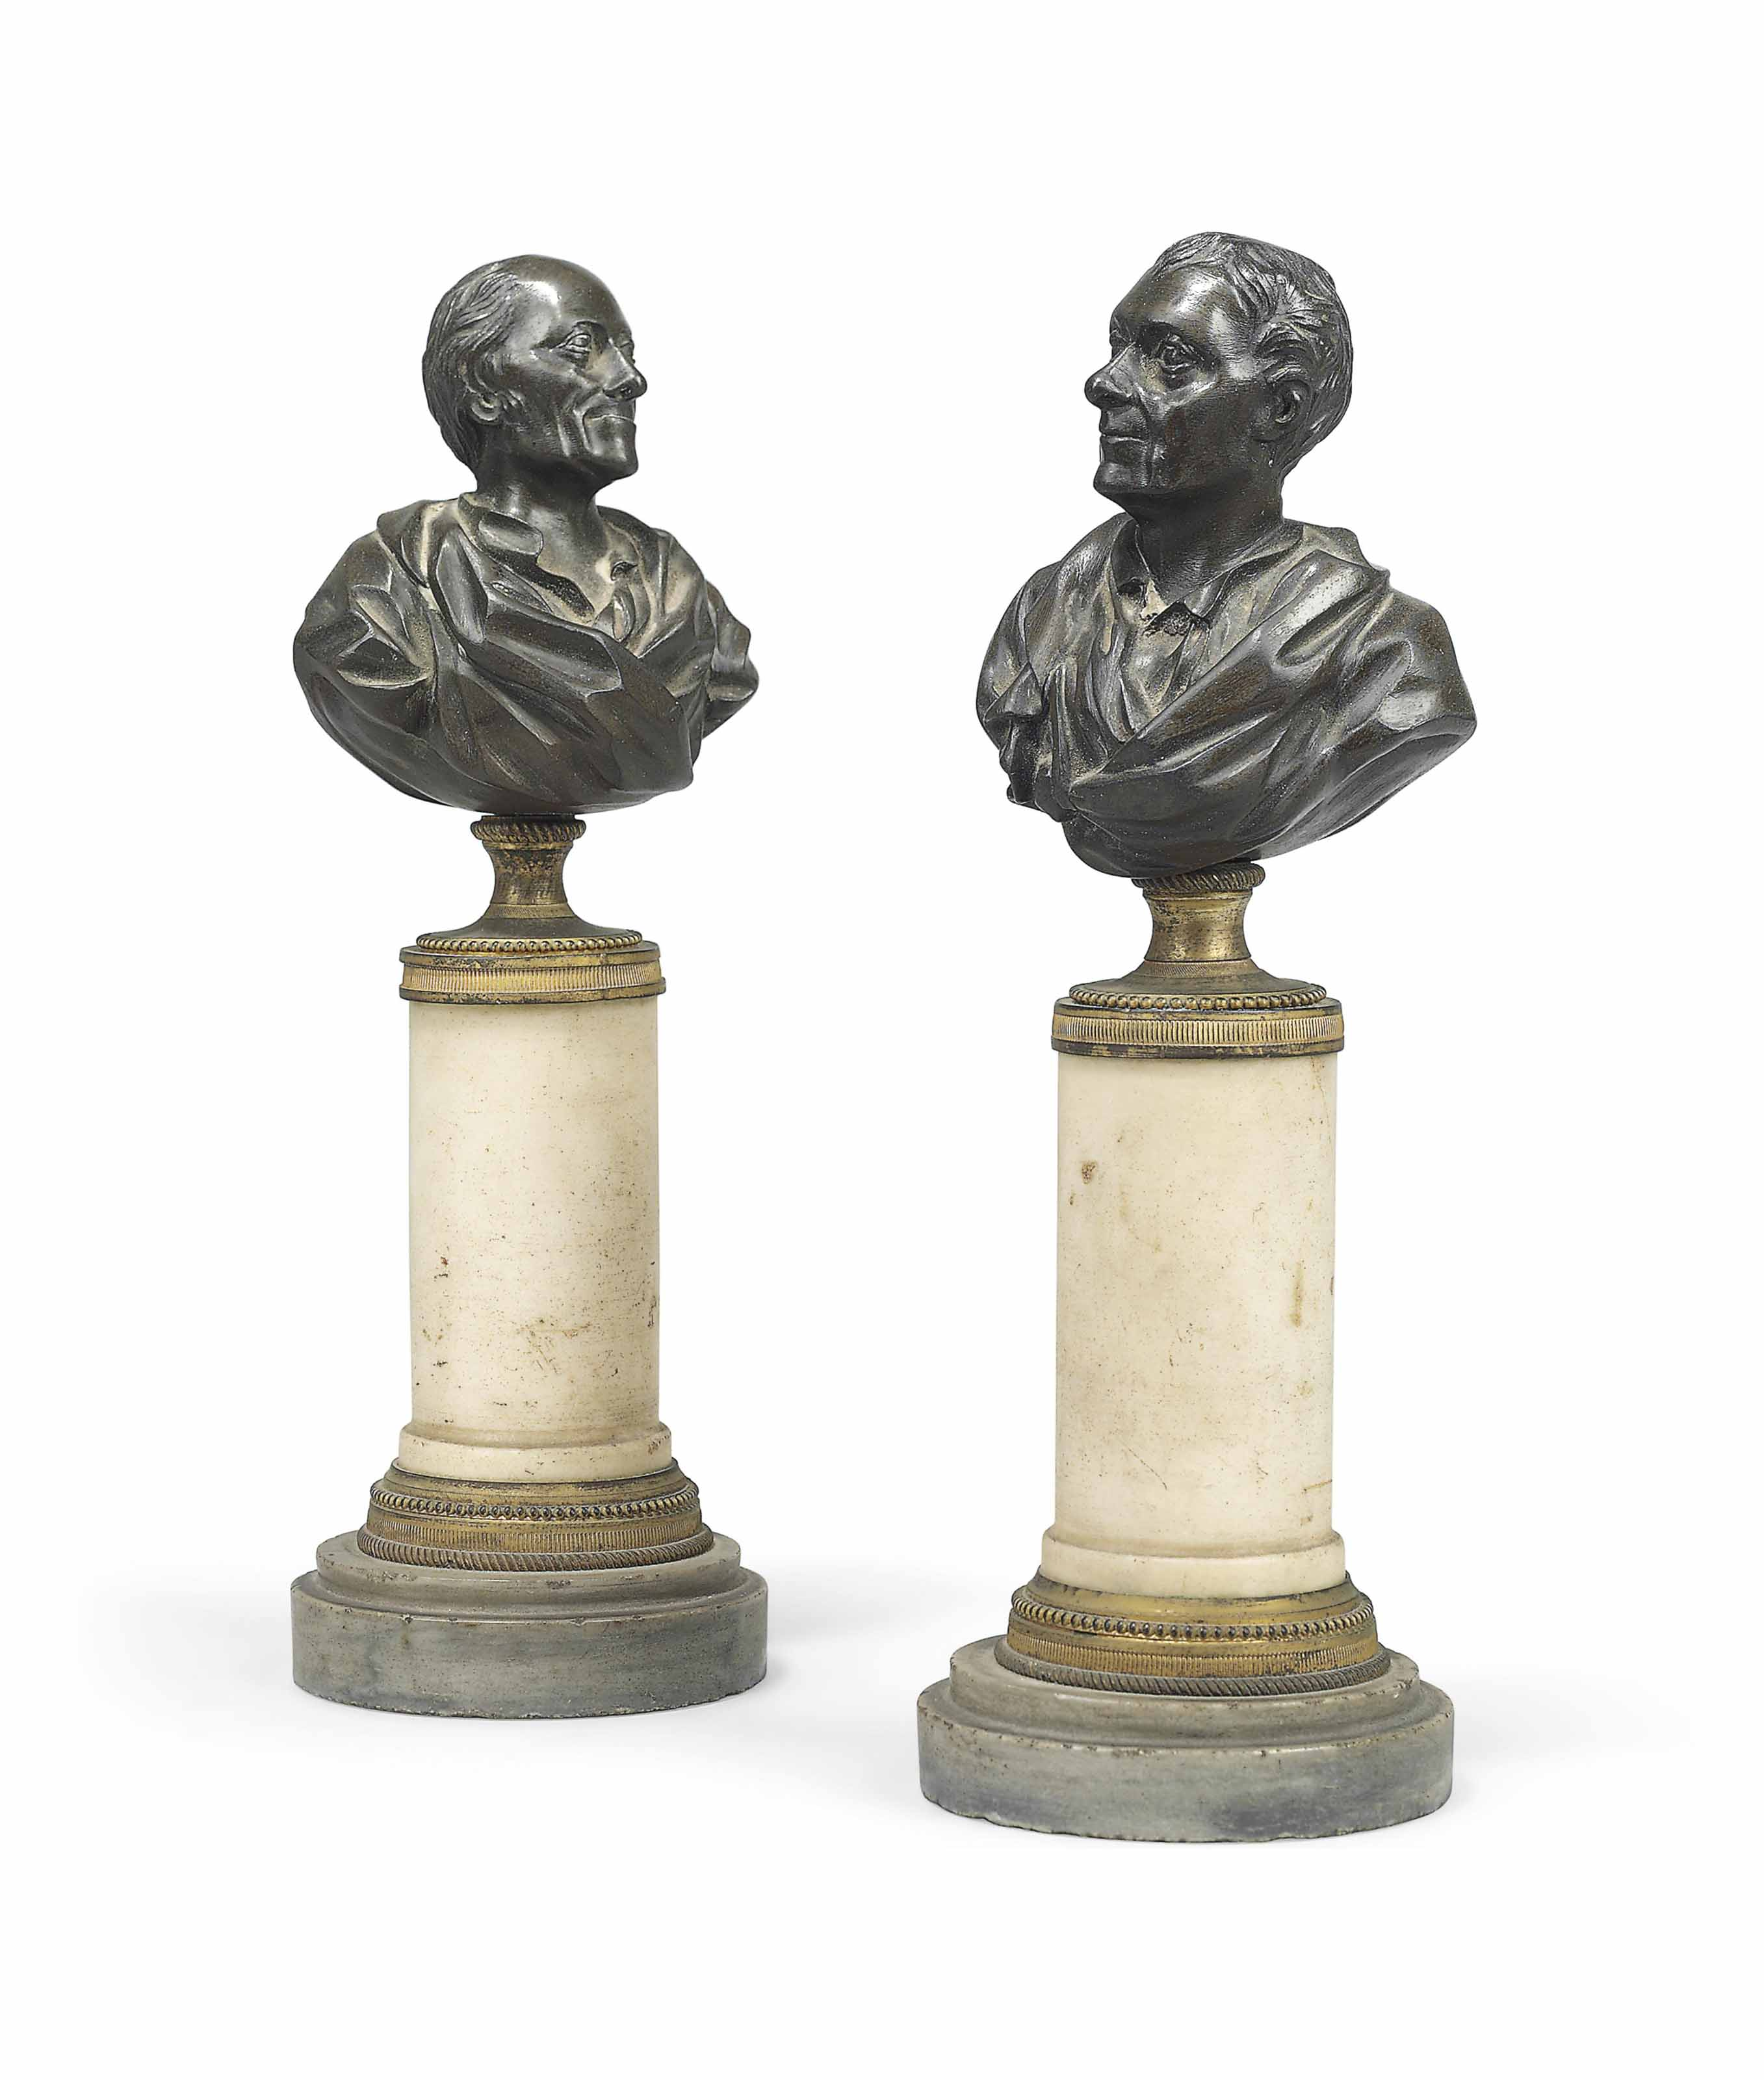 A PAIR OF BRONZE BUSTS OF VOLTAIRE AND ROUSSEAU